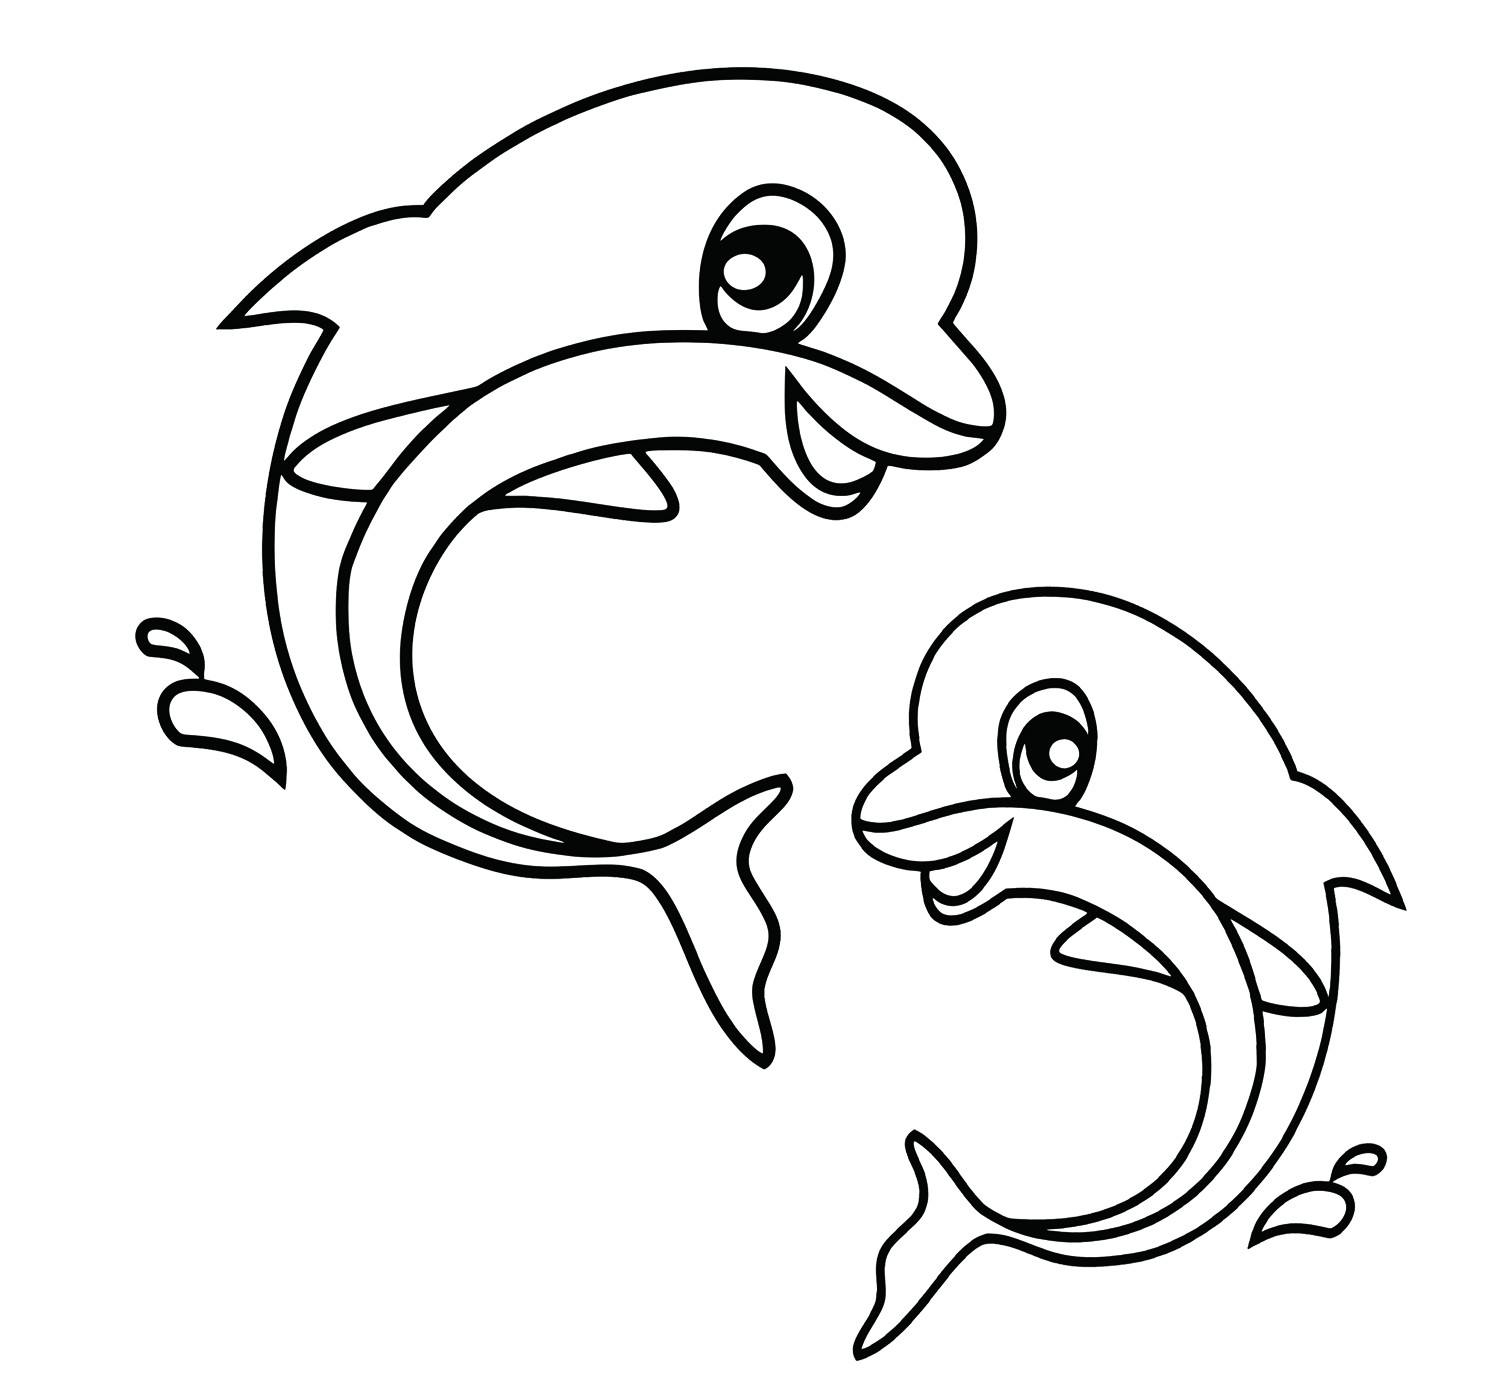 Coloring Book For Kids Animals  Animal Coloring Pages 10